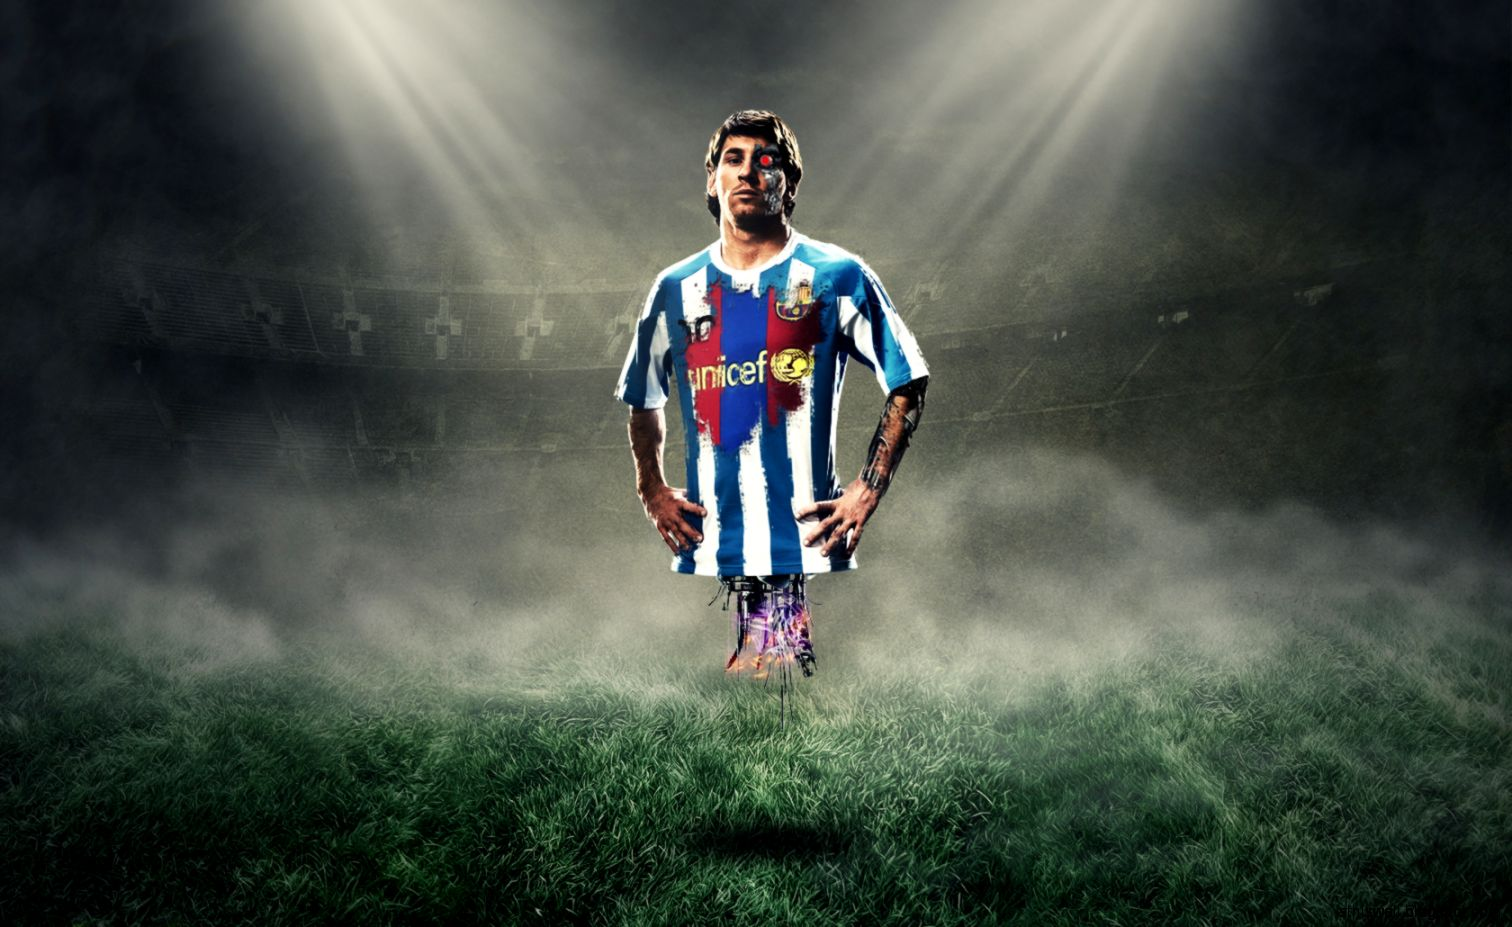 Download Cool Soccer Wallpapers Pixelstalk cool   Lionel 1512x927